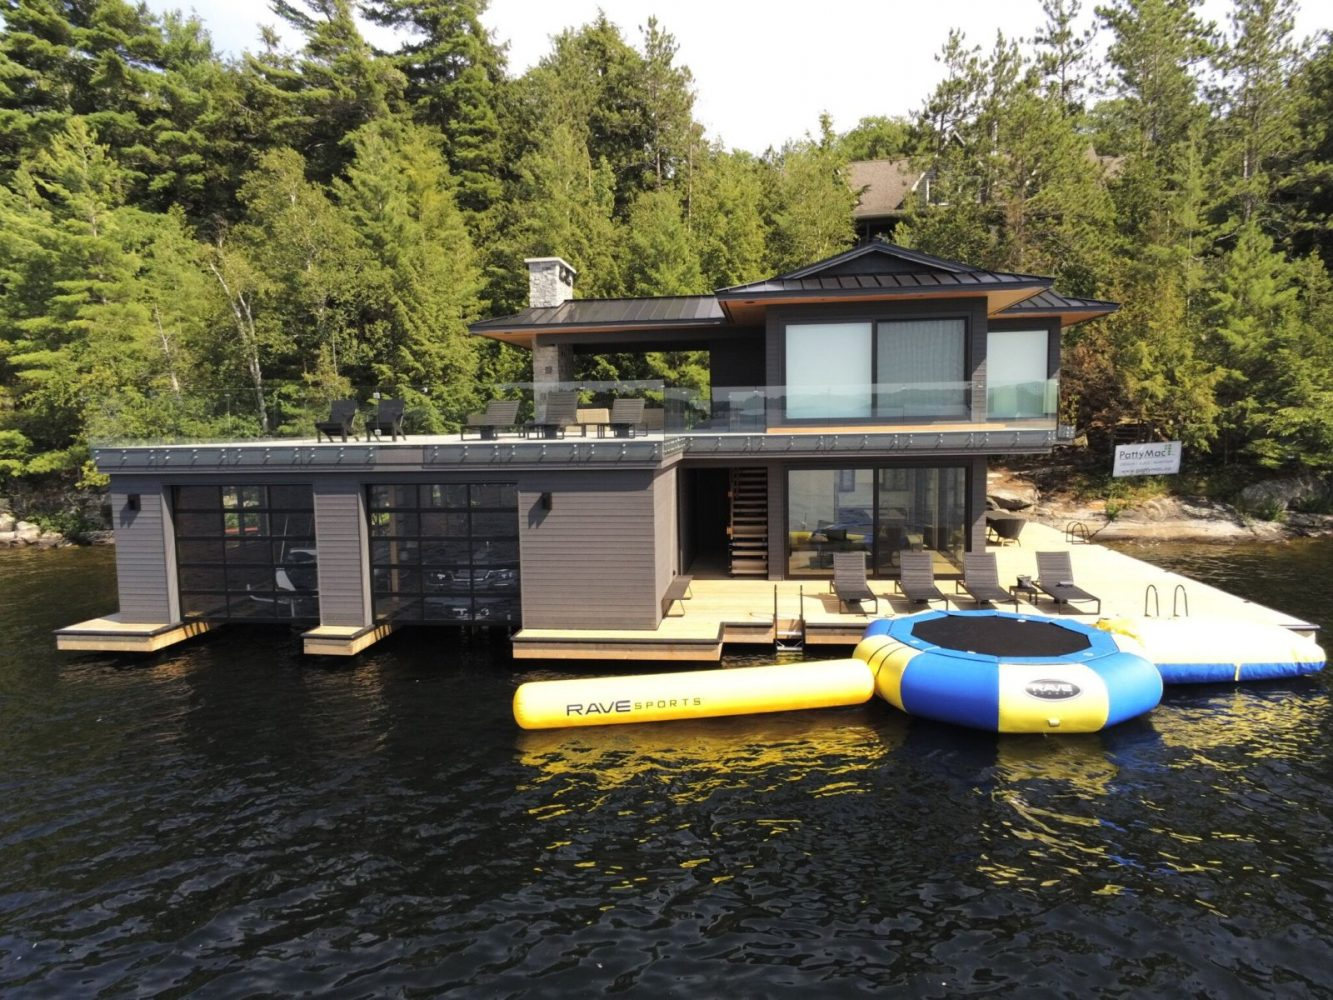 Contemporary boathouse by Spender Douglas and PattyMac